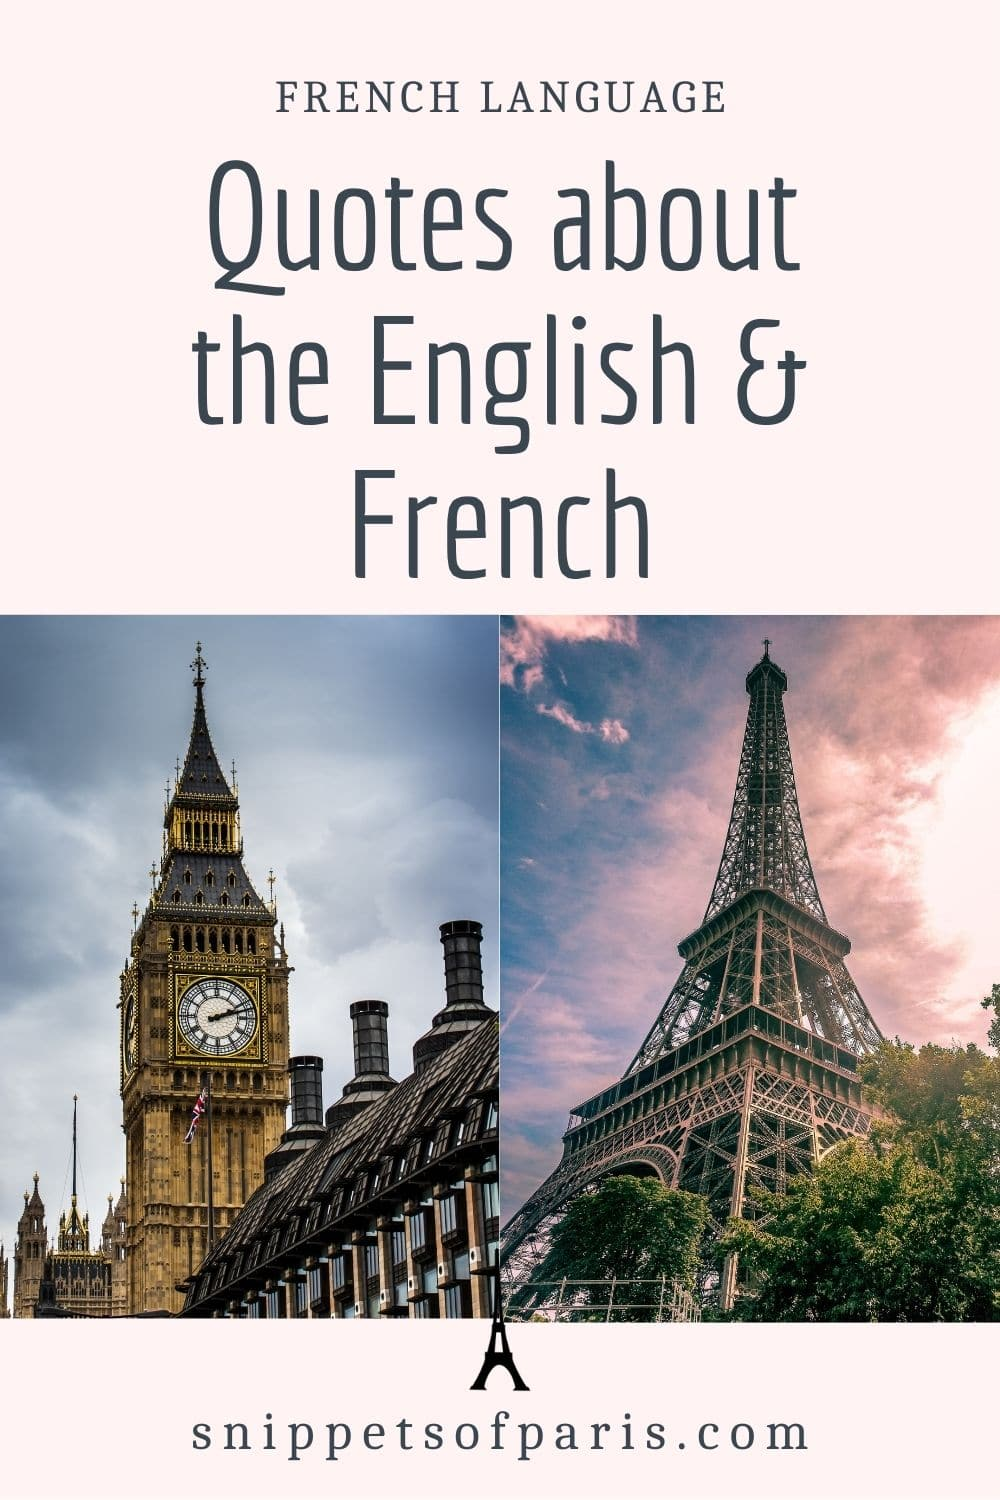 16 Funny Quotes about Britain and France